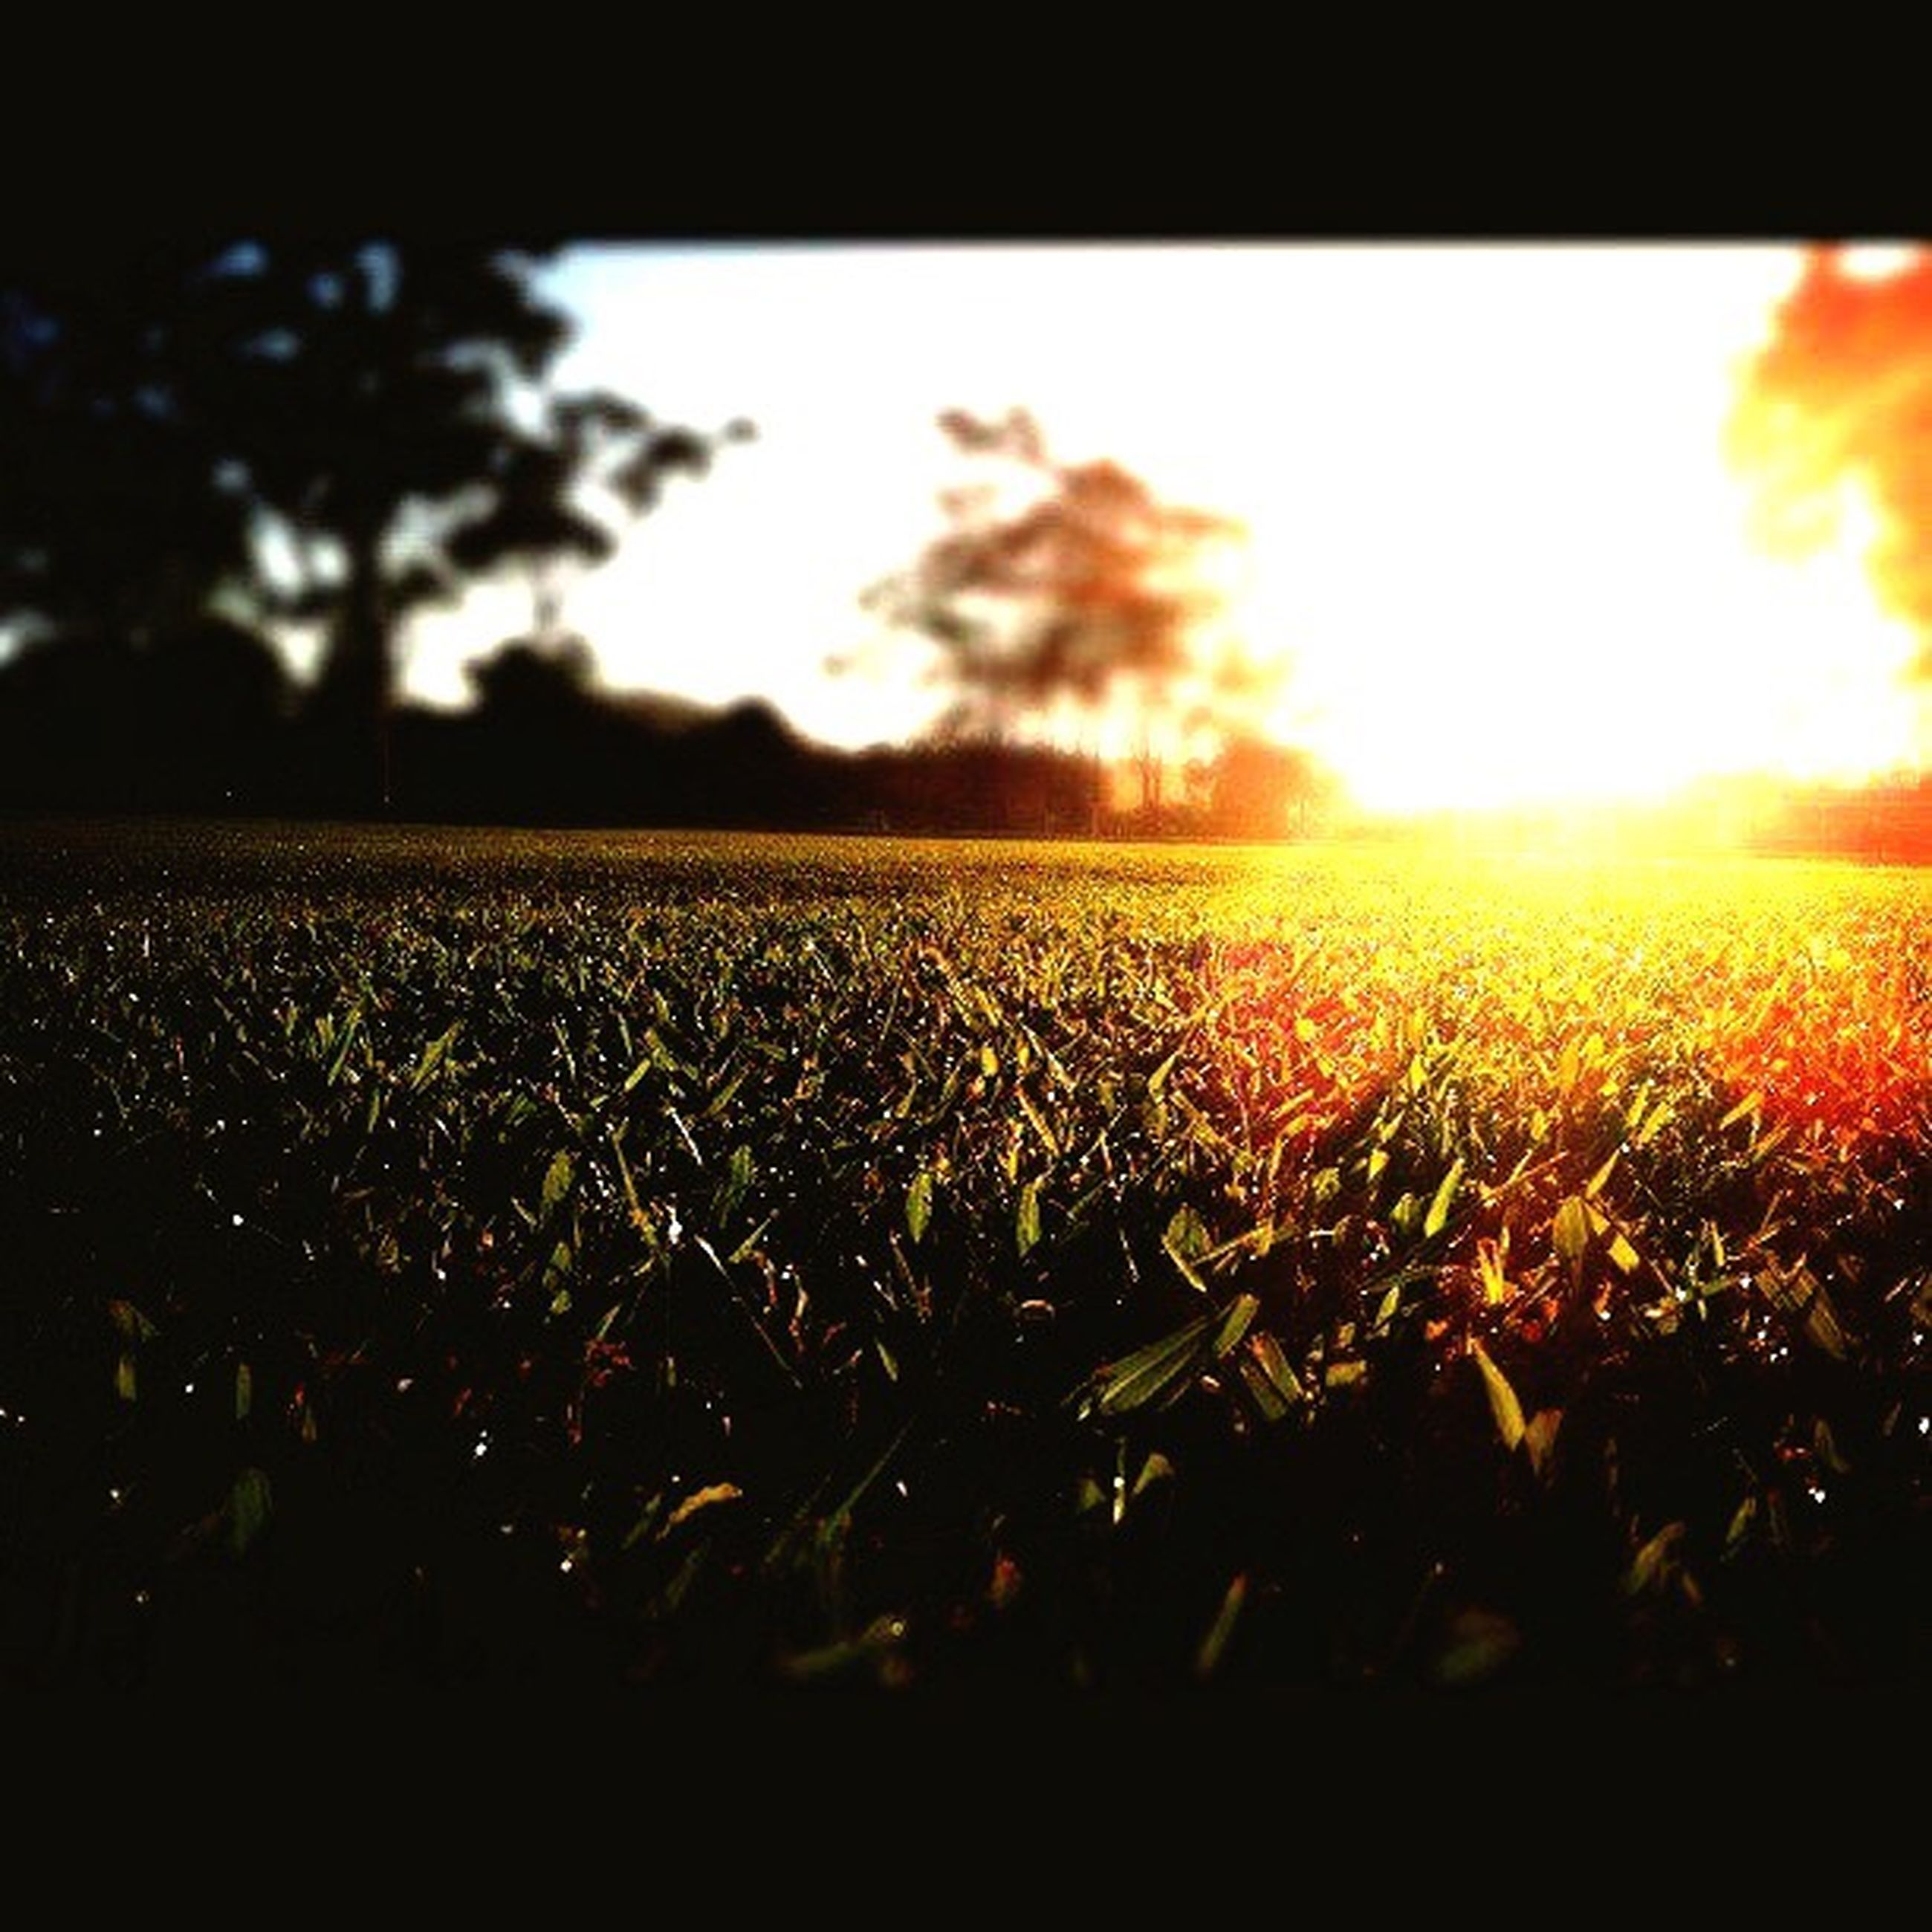 field, sunset, tranquil scene, growth, landscape, tree, tranquility, scenics, sun, sunlight, rural scene, beauty in nature, plant, nature, crop, sky, agriculture, farm, lens flare, green color, selective focus, sunbeam, surface level, cultivated land, plantation, outdoors, bright, backlit, no people, grass area